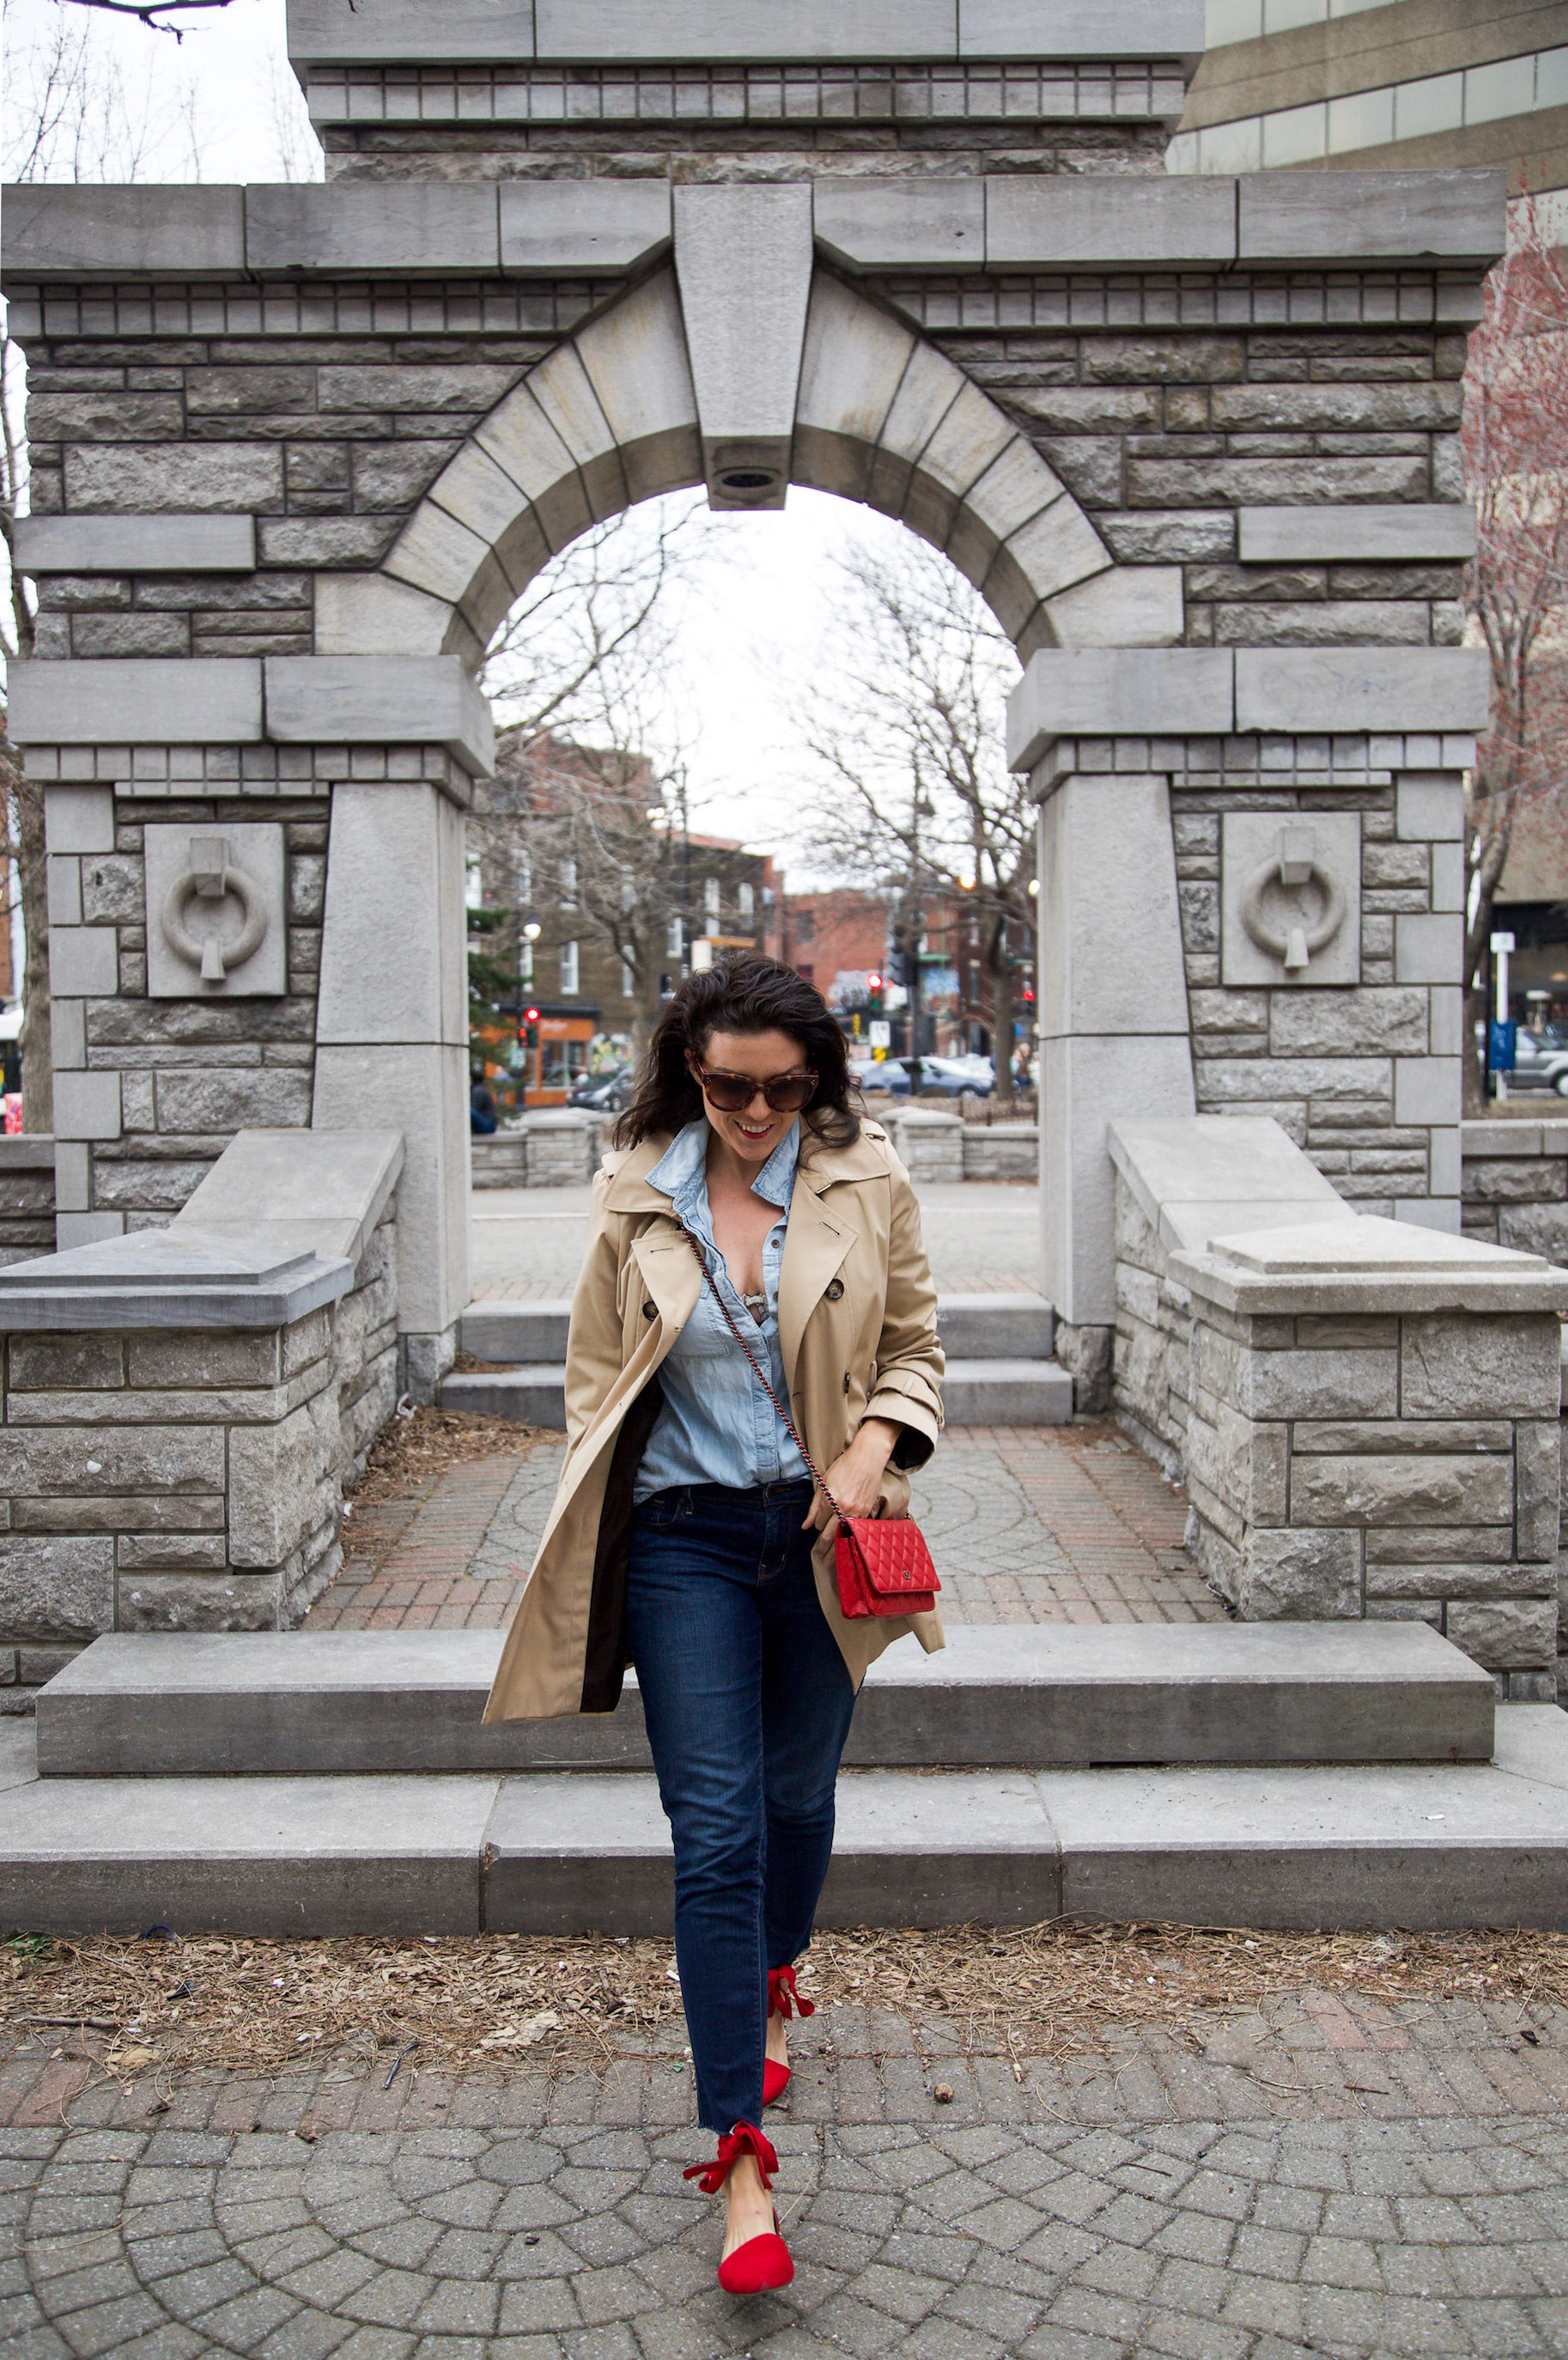 denim-on-denim-outfit-with-trench-coat-and-red-accessories3.jpg